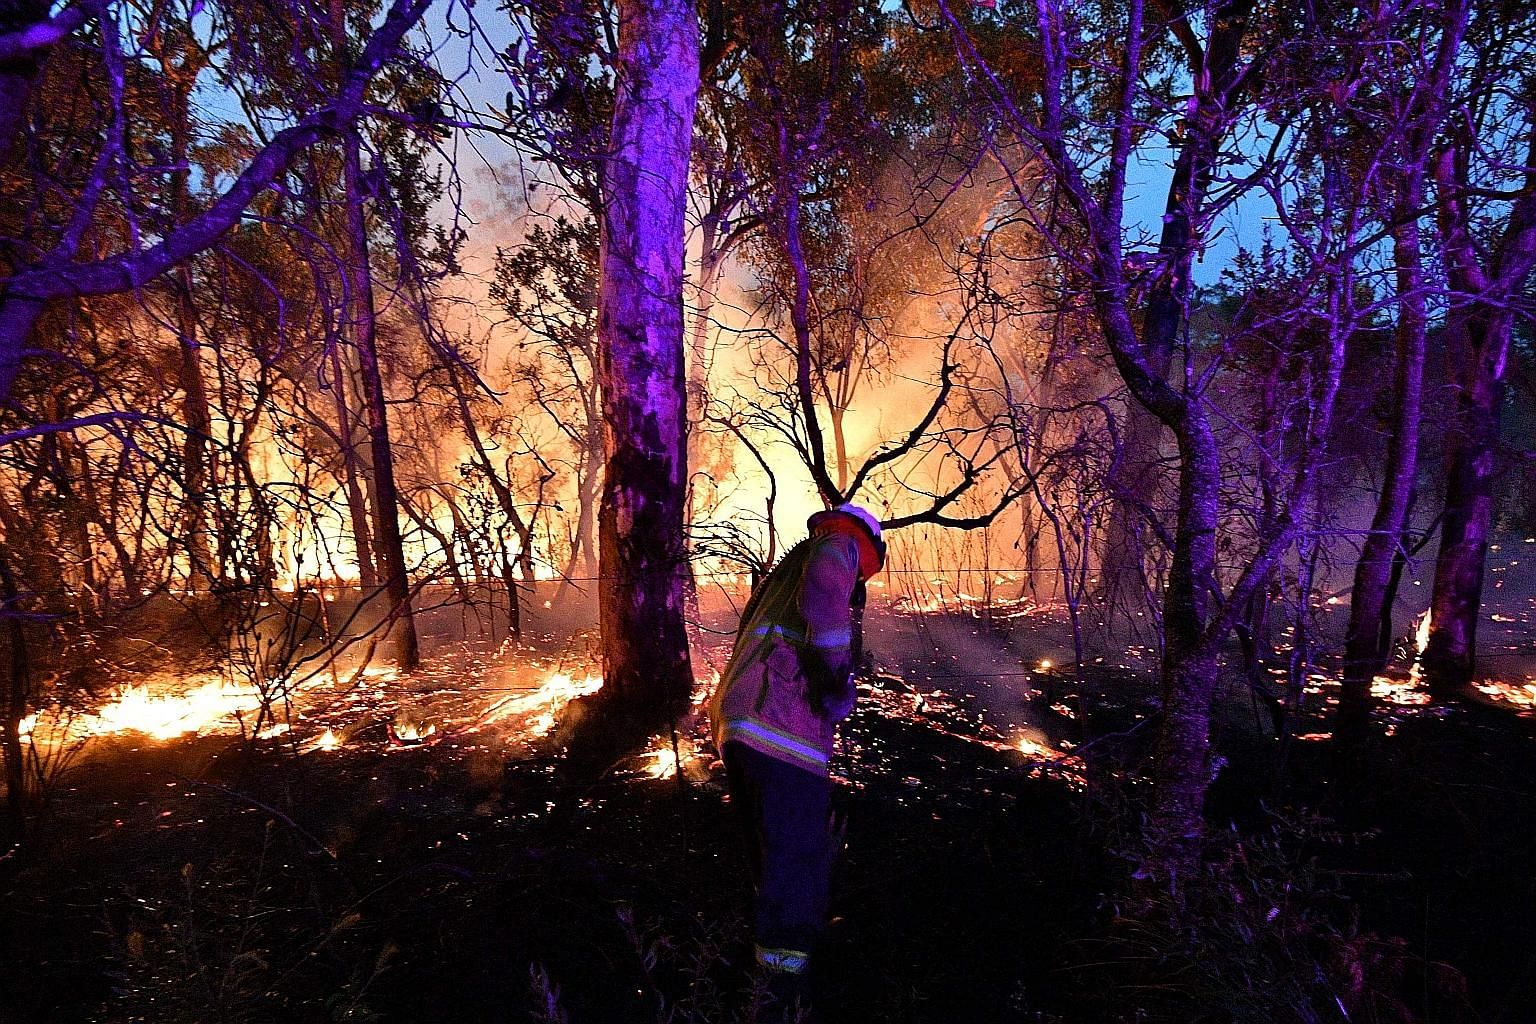 A firefighter conducting backburning on Saturday to secure residential areas from encroaching bush fires about 100km north of Sydney. Bush fires are common in Australia, but scientists say this year's fire season has come earlier and is more extreme,